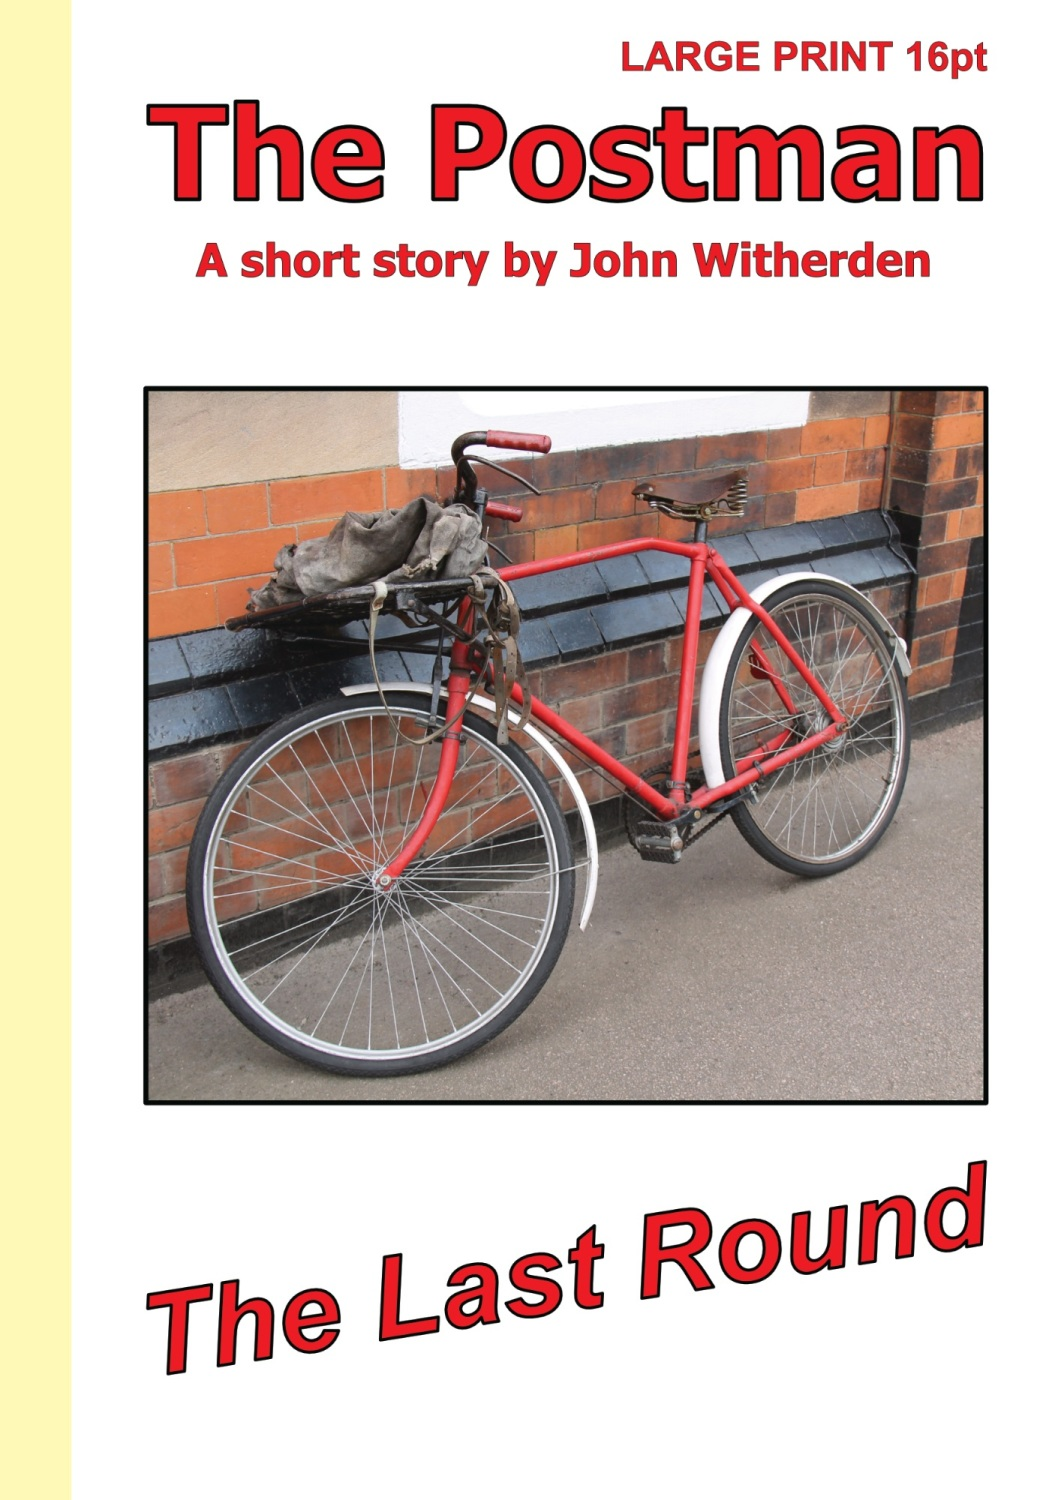 The Sussex Postman - Short Story in Large Type